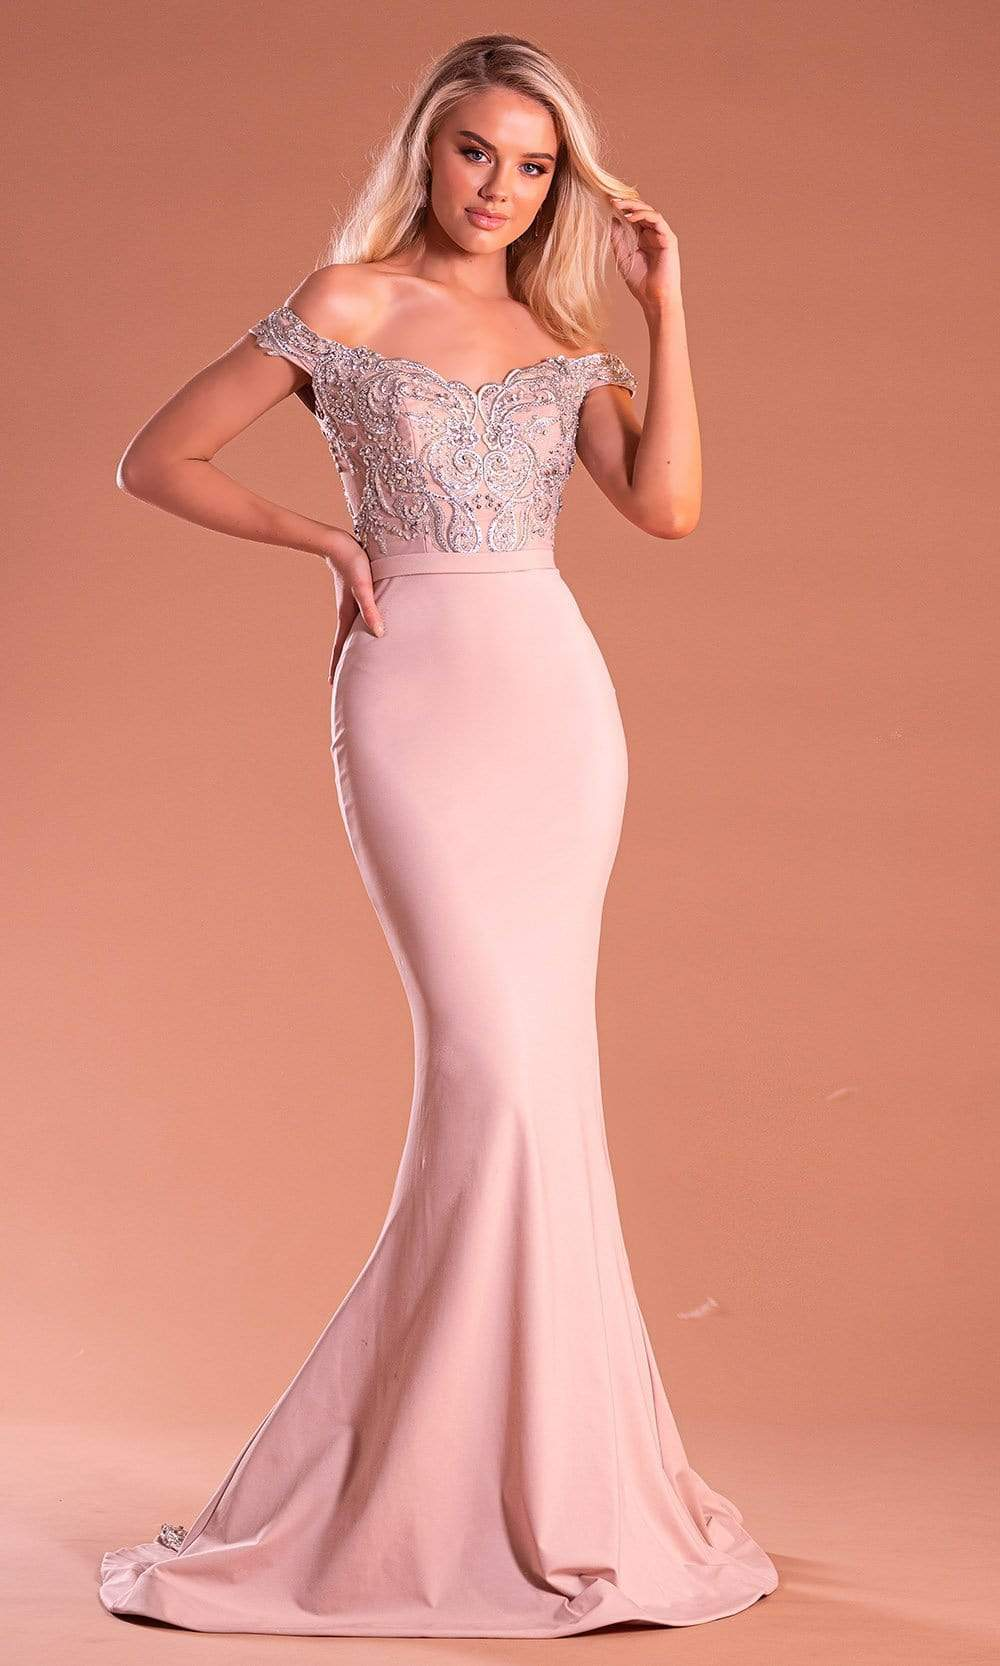 Portia and Scarlett - PS21190 Embroidered Off Shoulder Mermaid Dress from Portia and Scarlett